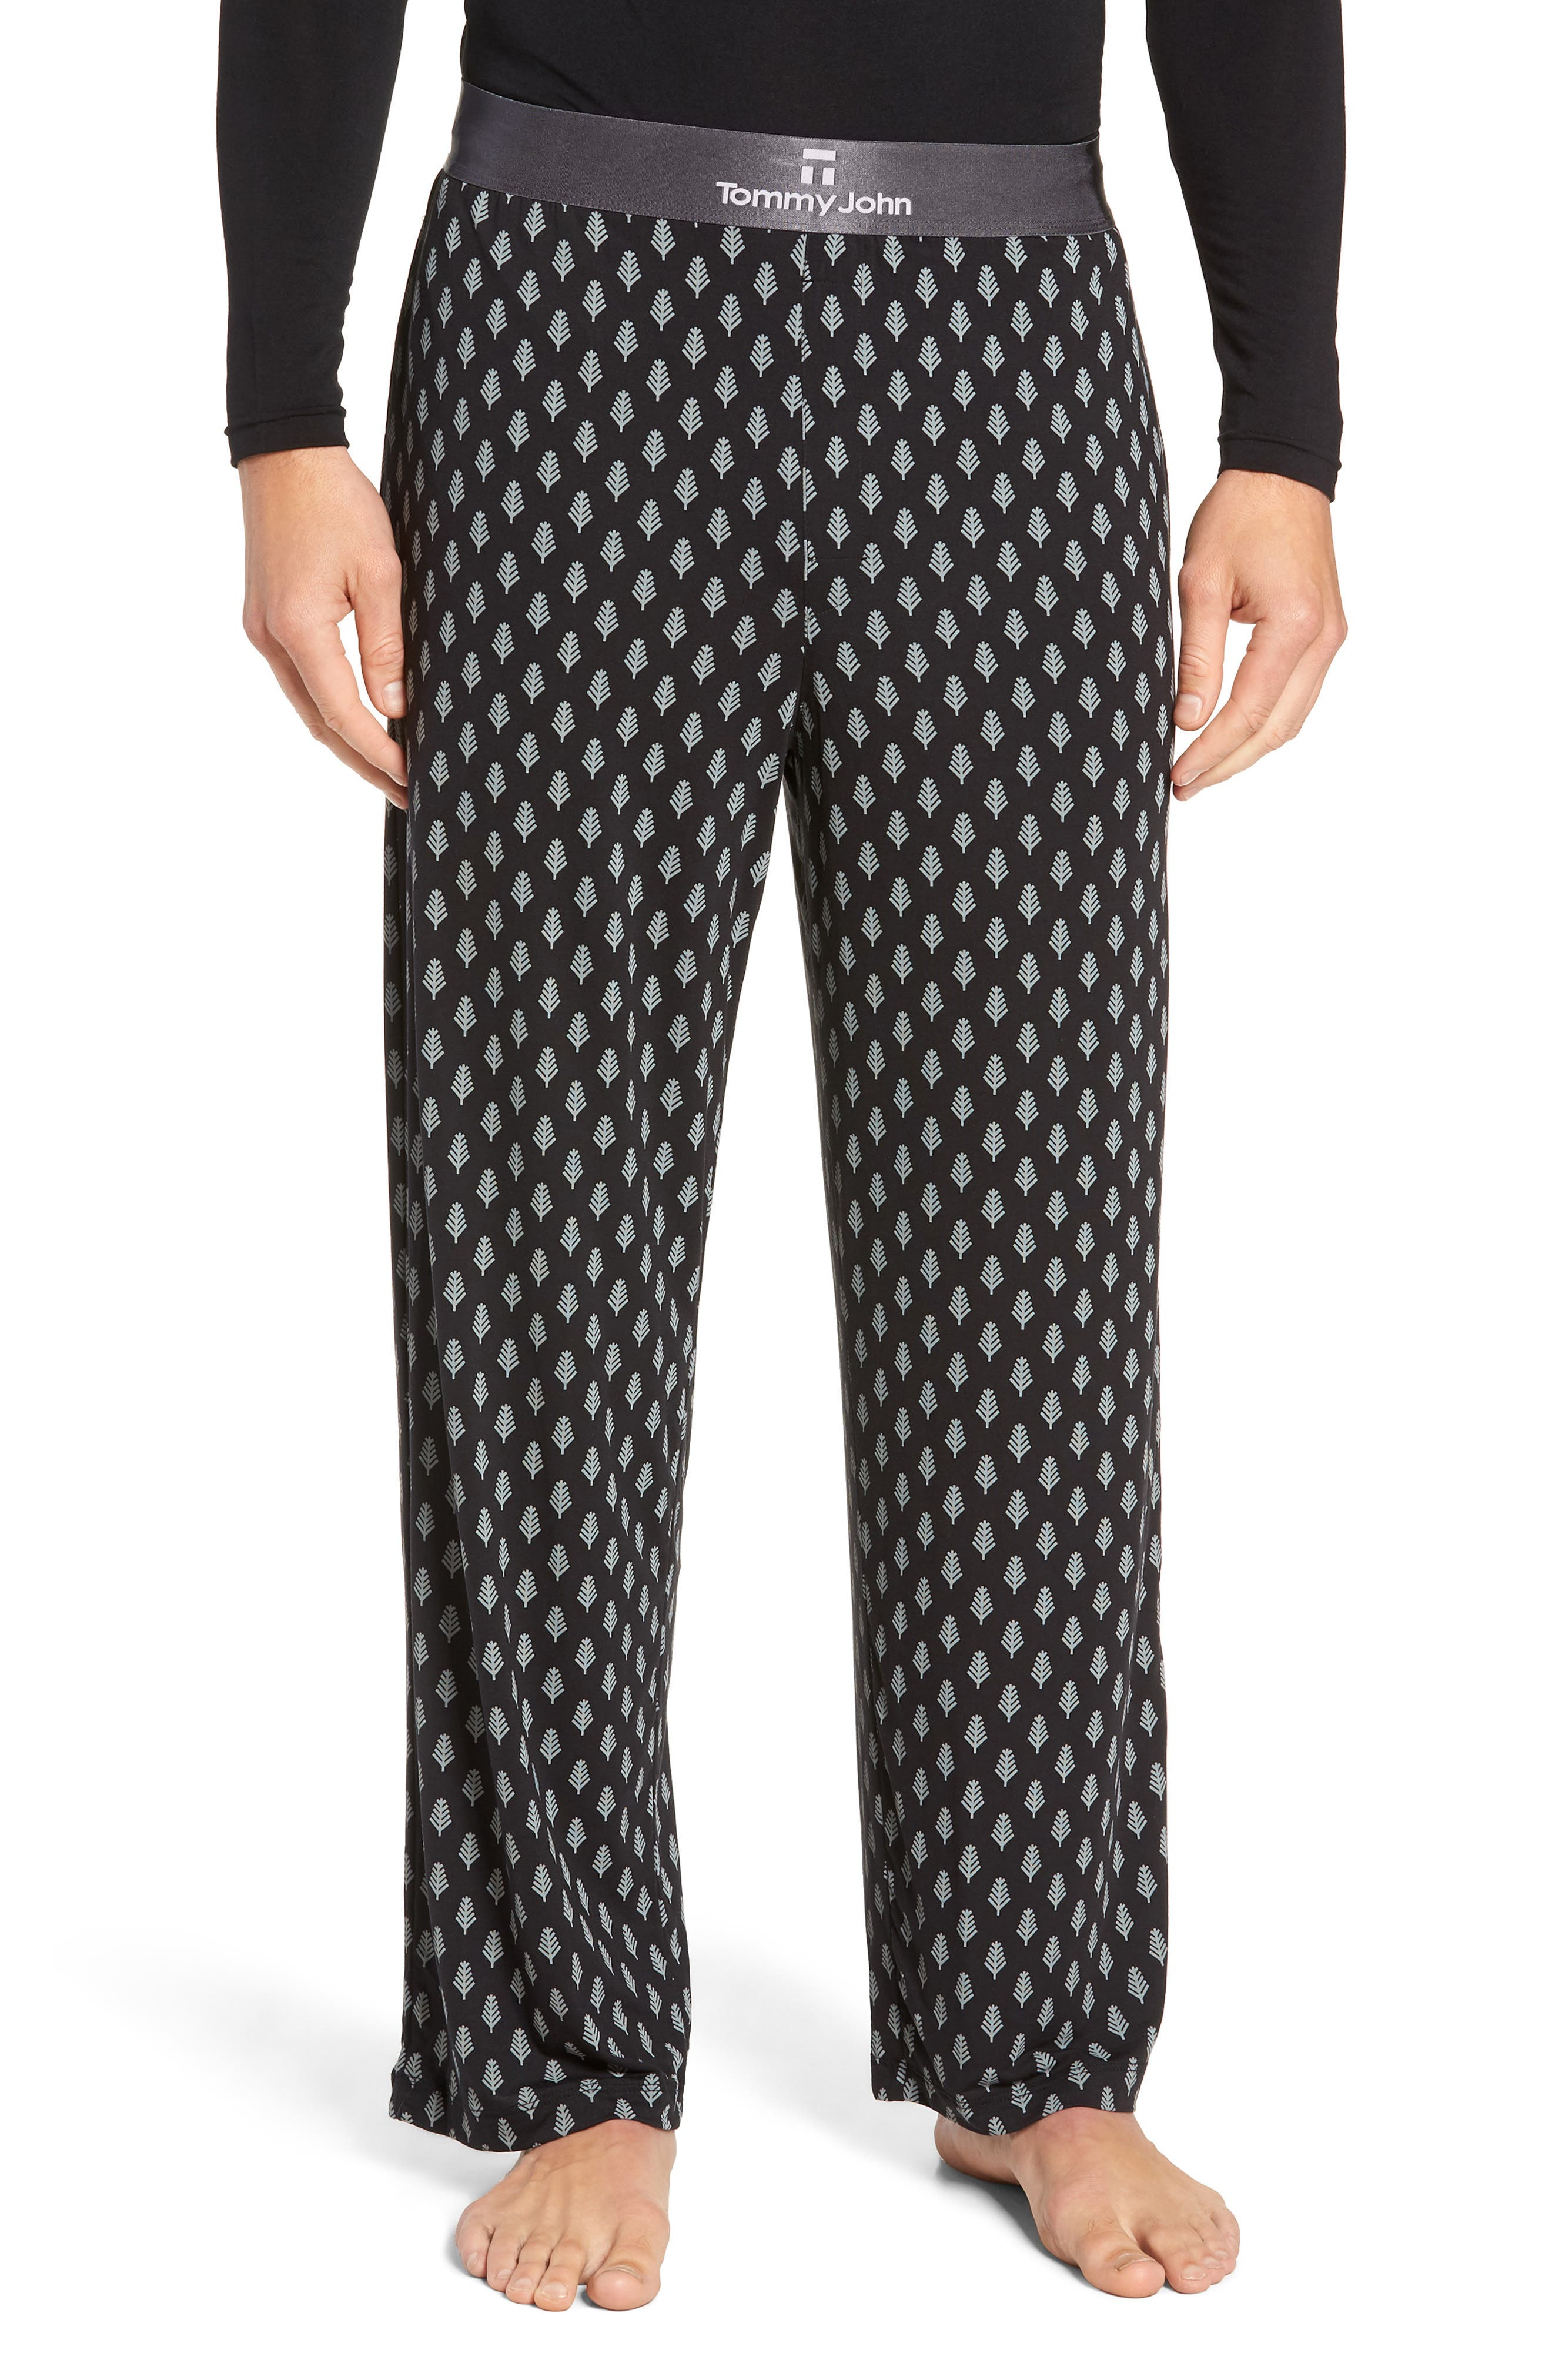 Second Skin Lounge Pants,                         Main,                         color, BLACK SNOWY FOREST